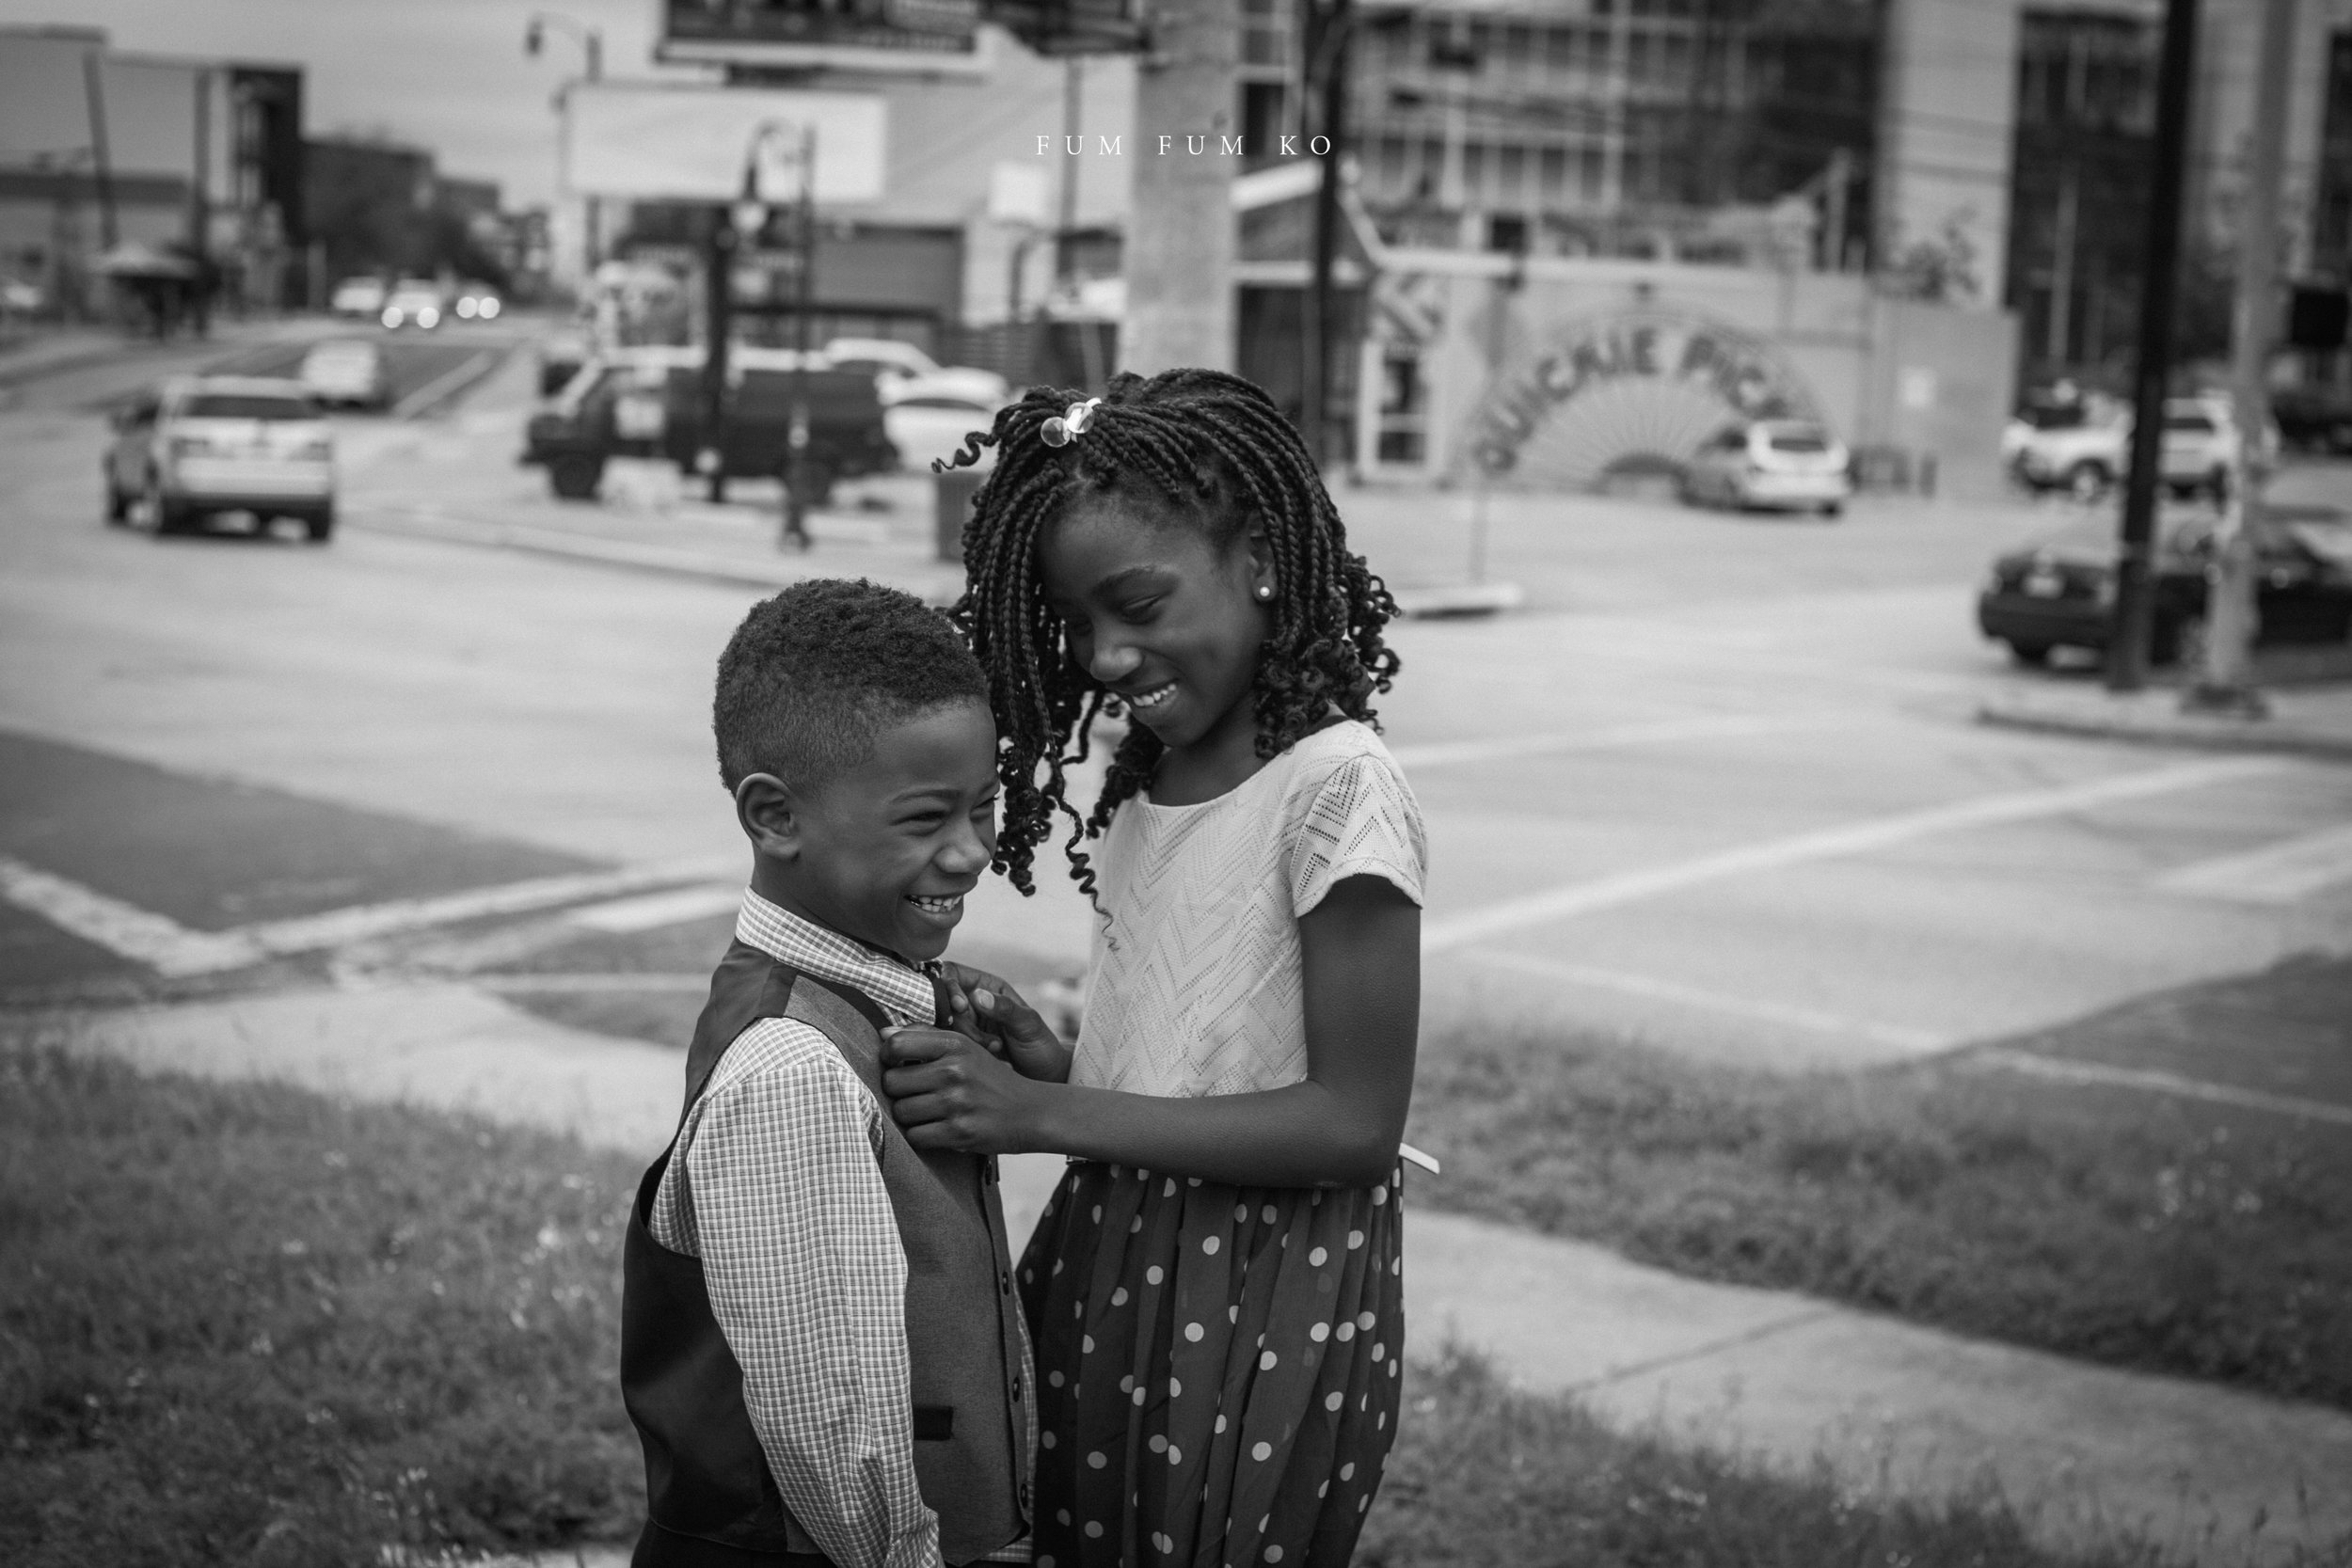 Kids -   EAST LIKE I KNEW IT TO BE  - PART 2 -  Amani & Maurice